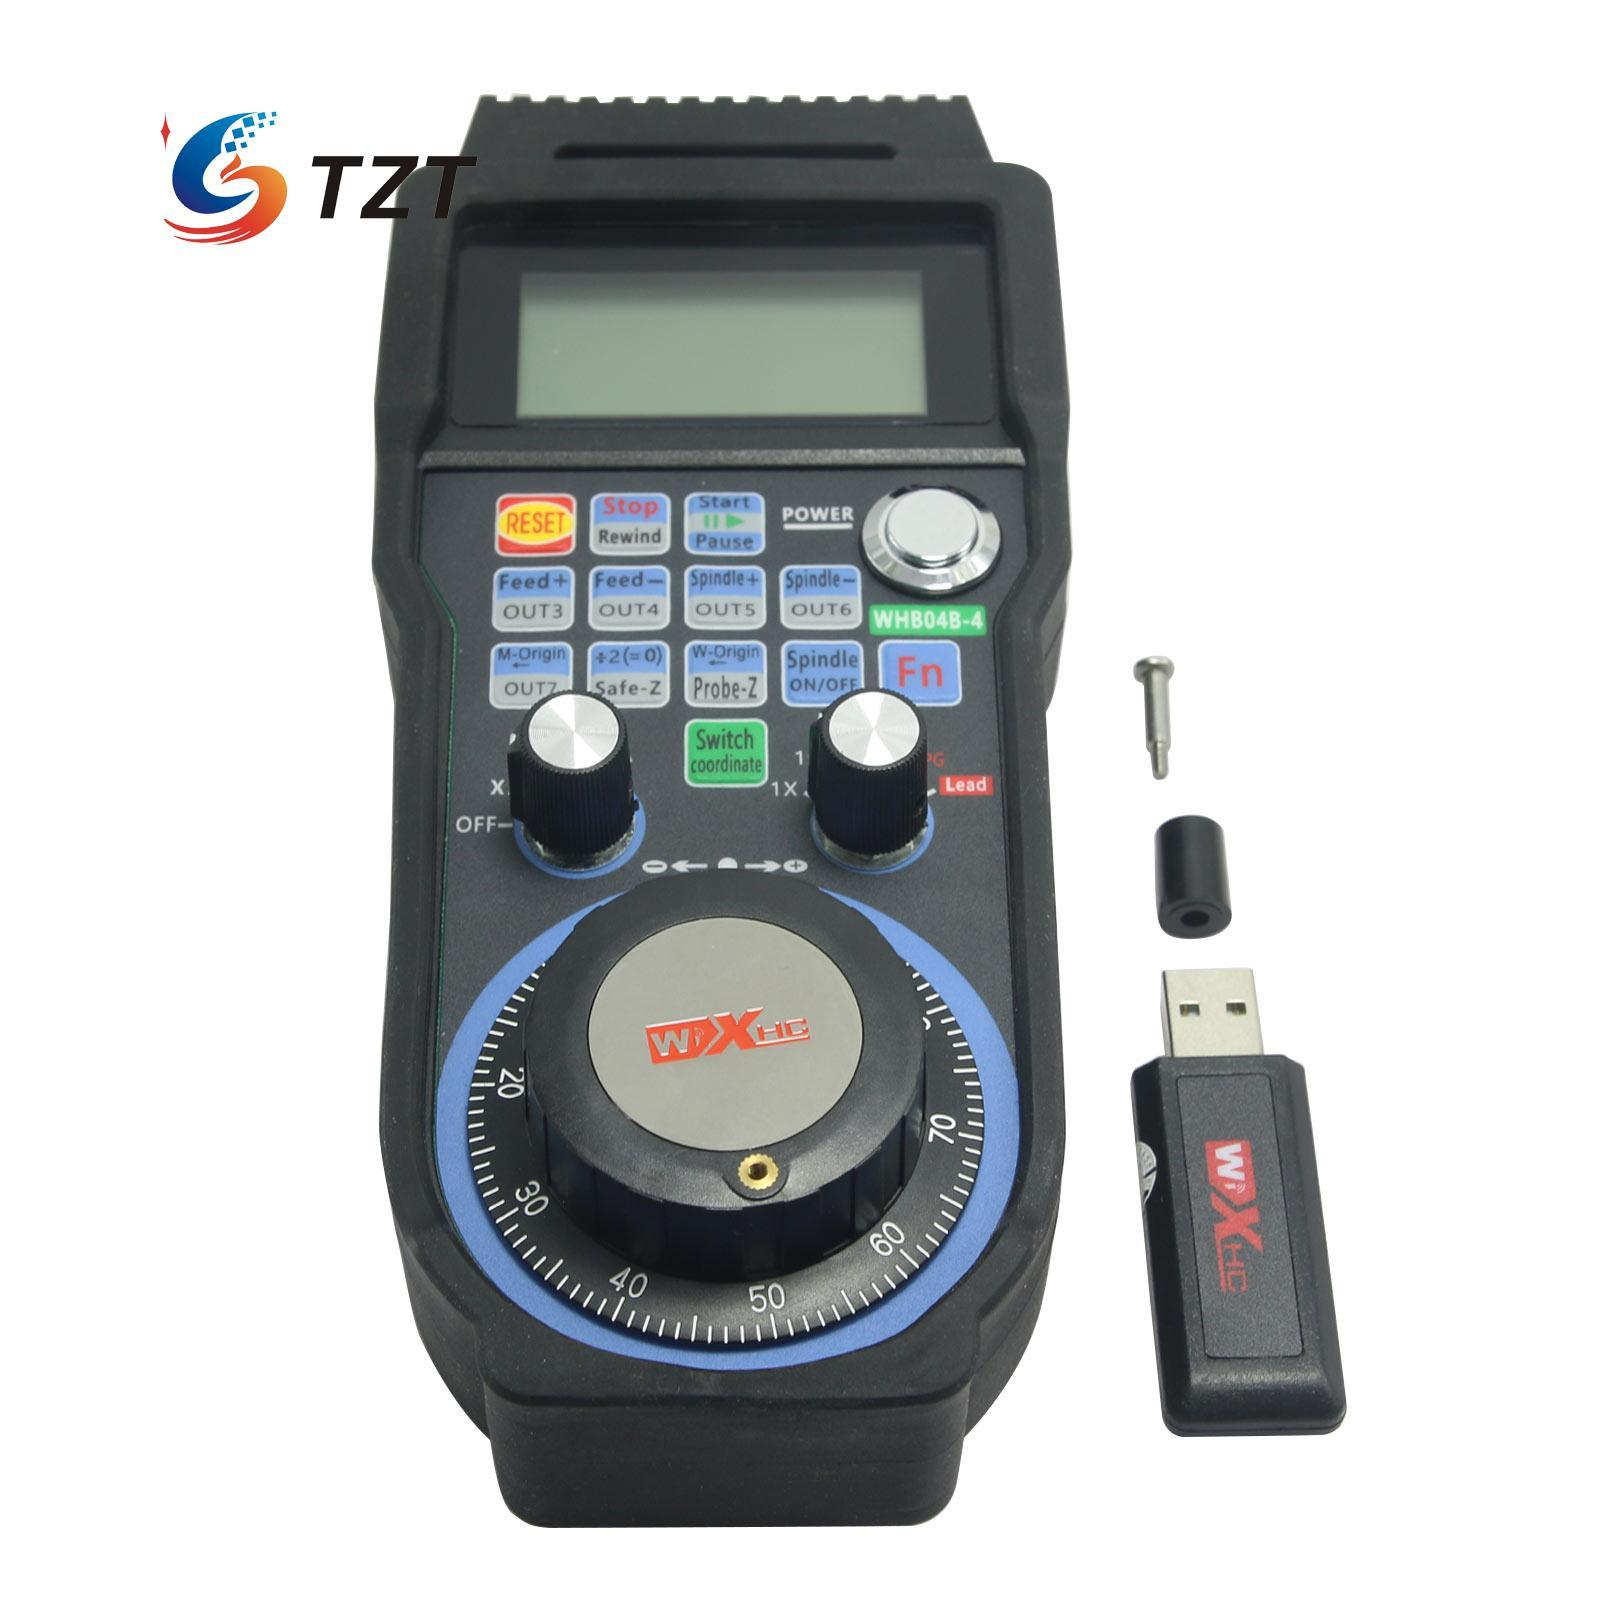 Wholesale CNC MACH3 4 Axis Wireless Electronic Handwheel 100PPR Manual  Controller USB Handle MPG WHB04B Controller Remote On Tv Remote From  Cowpea, ...